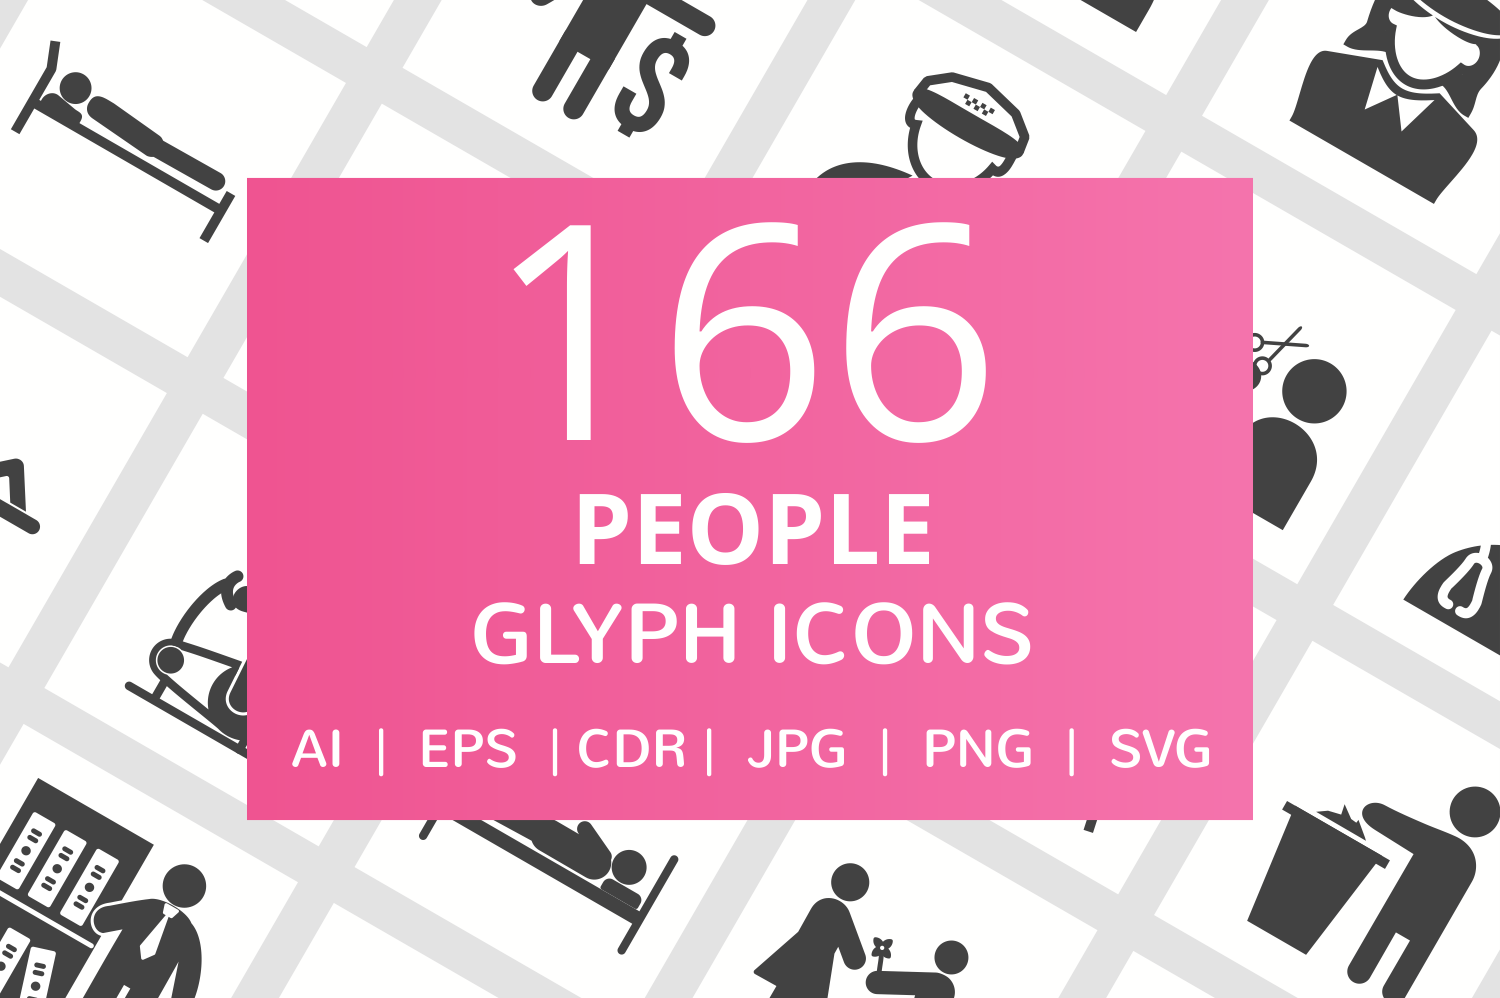 166 People Glyph Icons example image 1